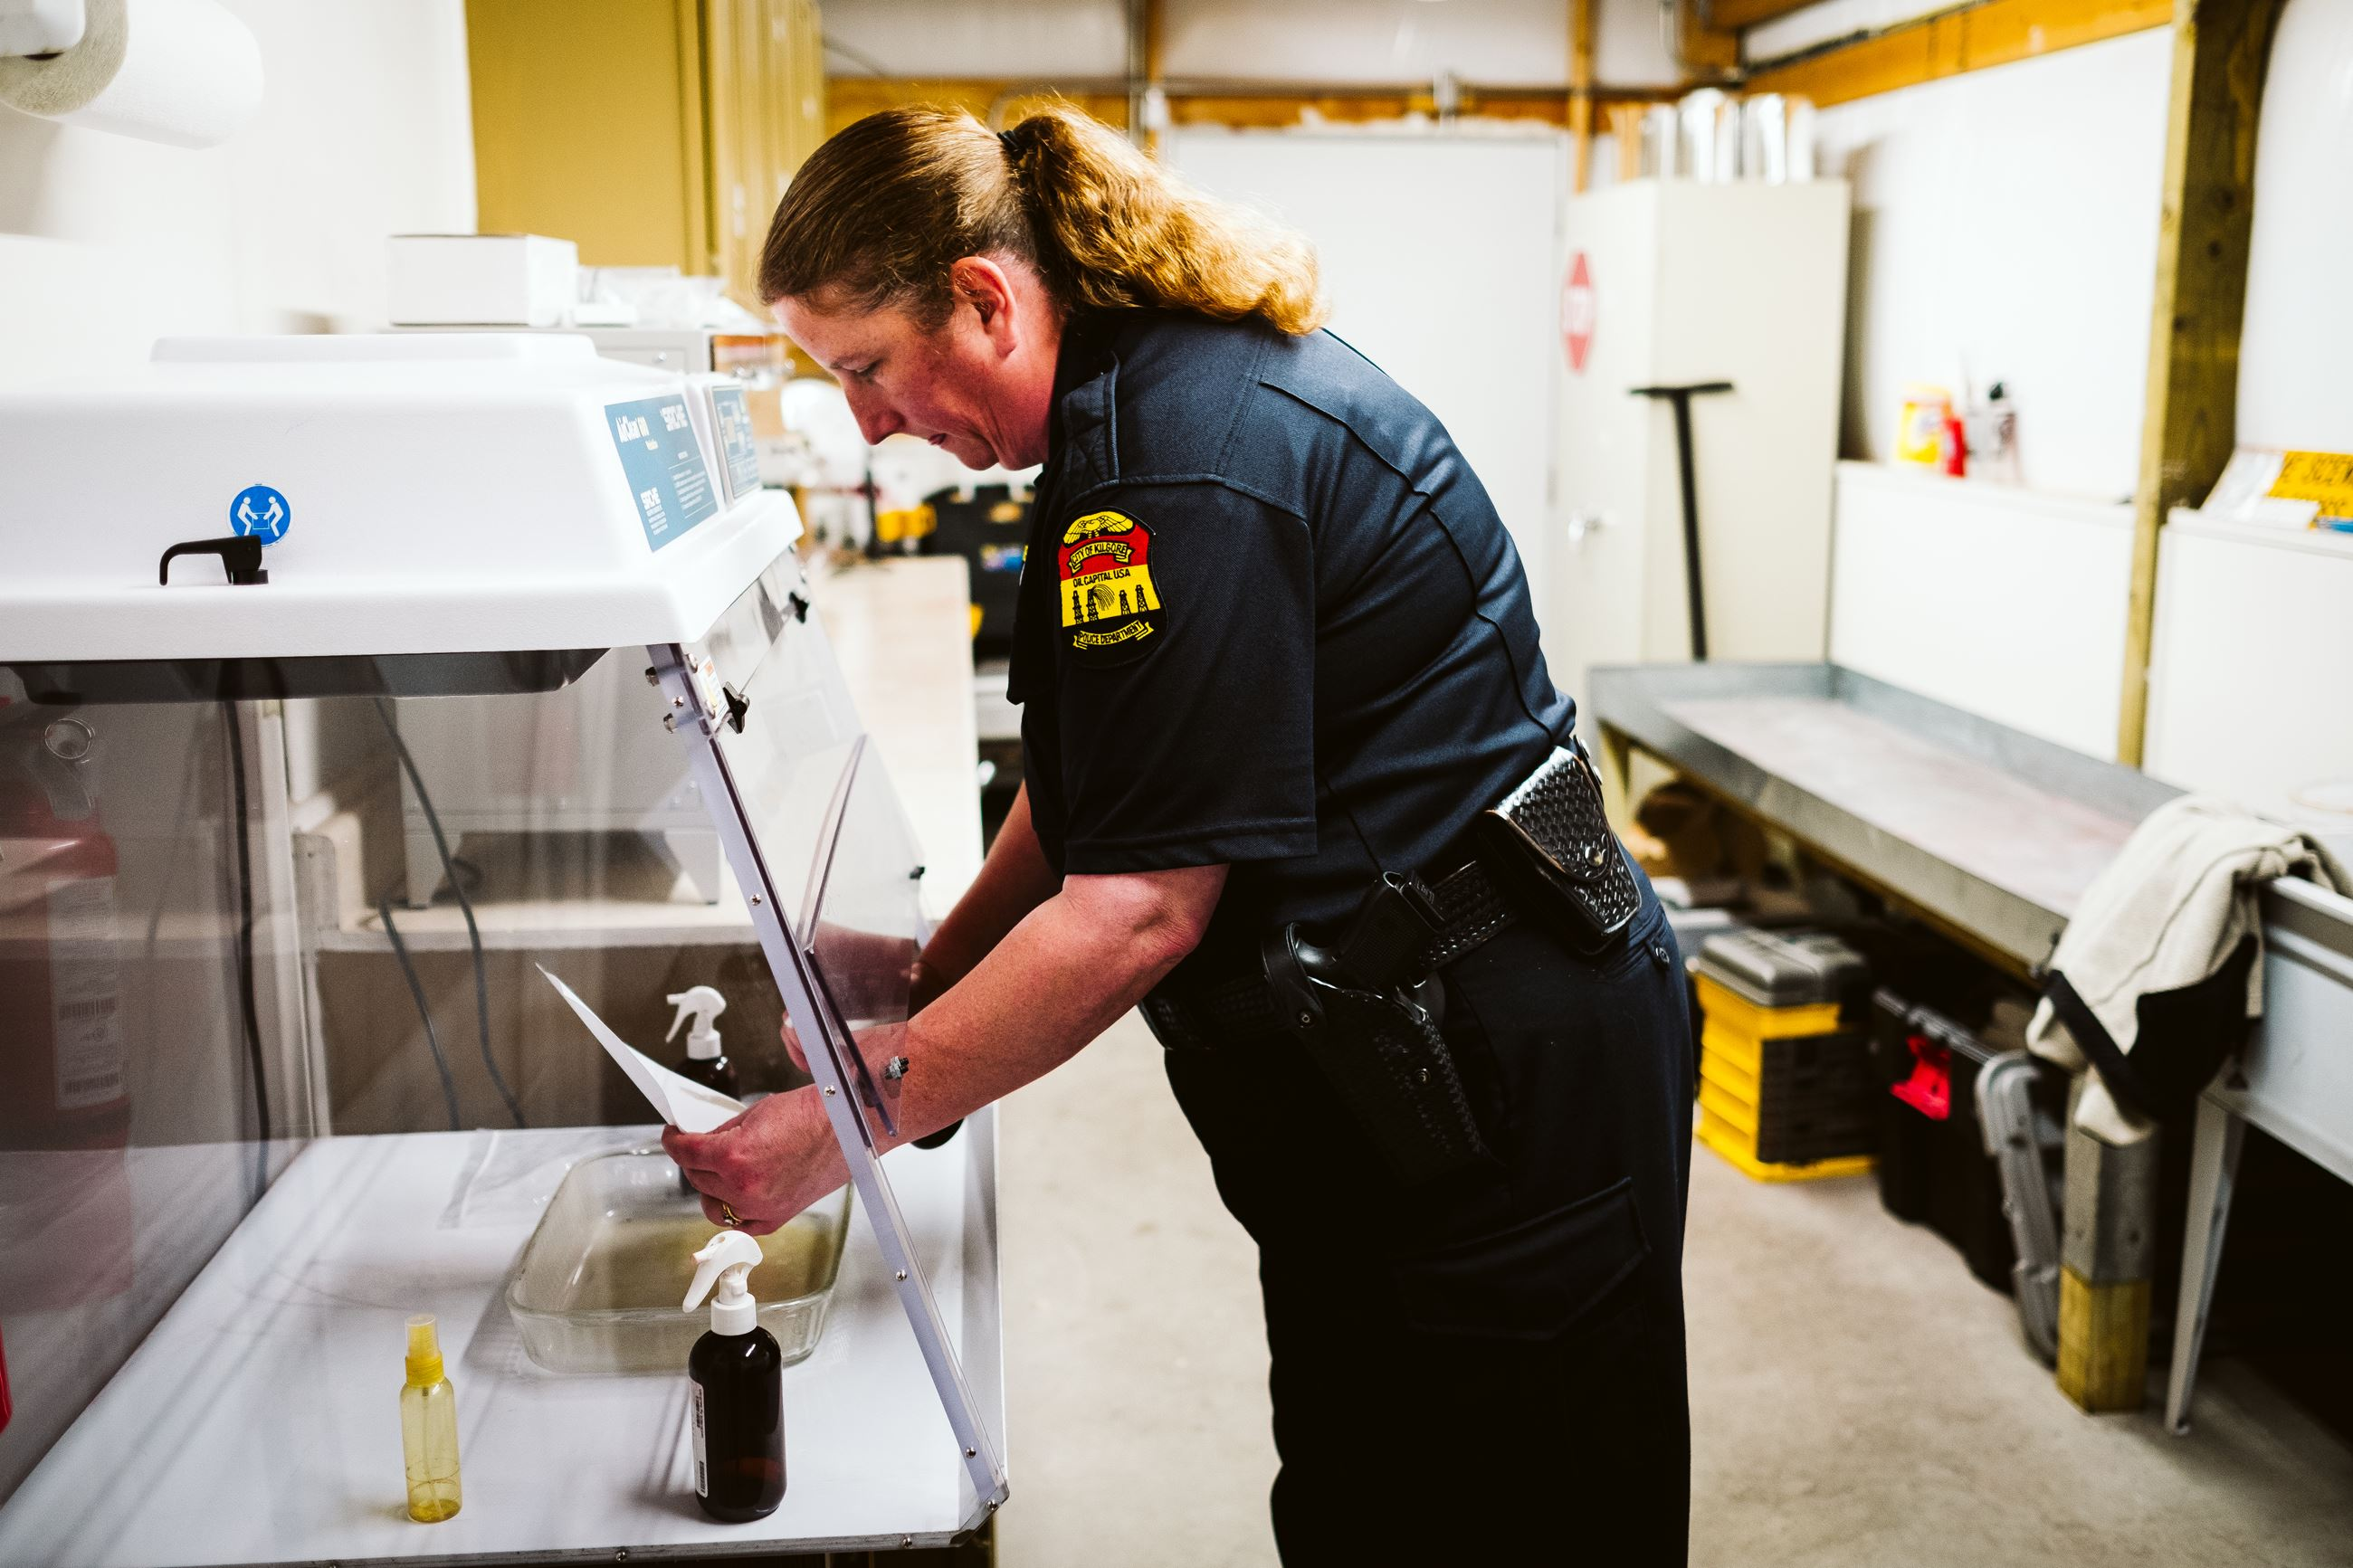 Investigator analyzing evidence in crime lab